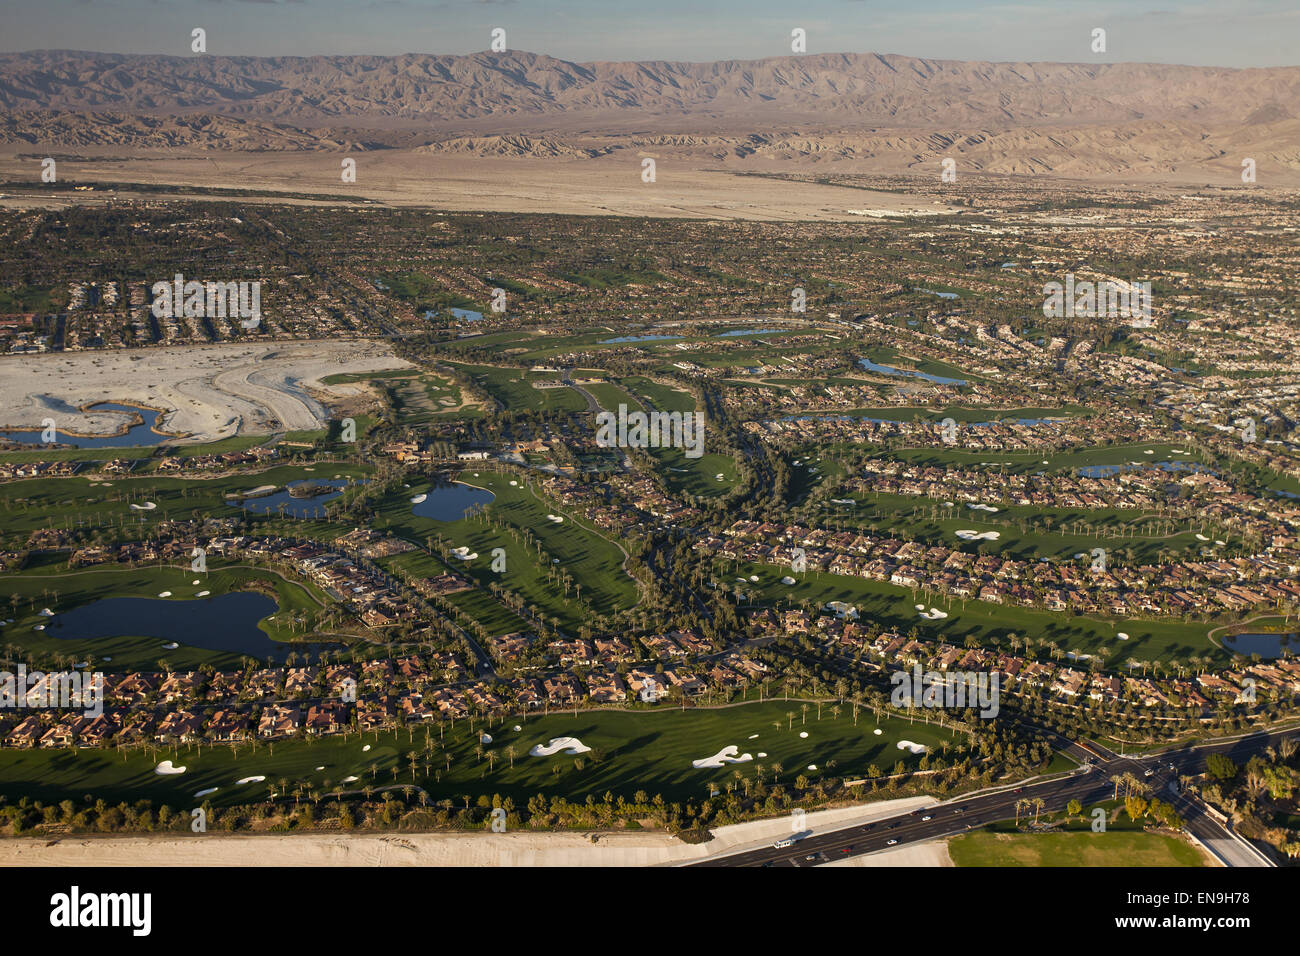 Aerial views of all the golf courses using scarce water supplies to  maintain their lush green look in drought conditions Stock Photo